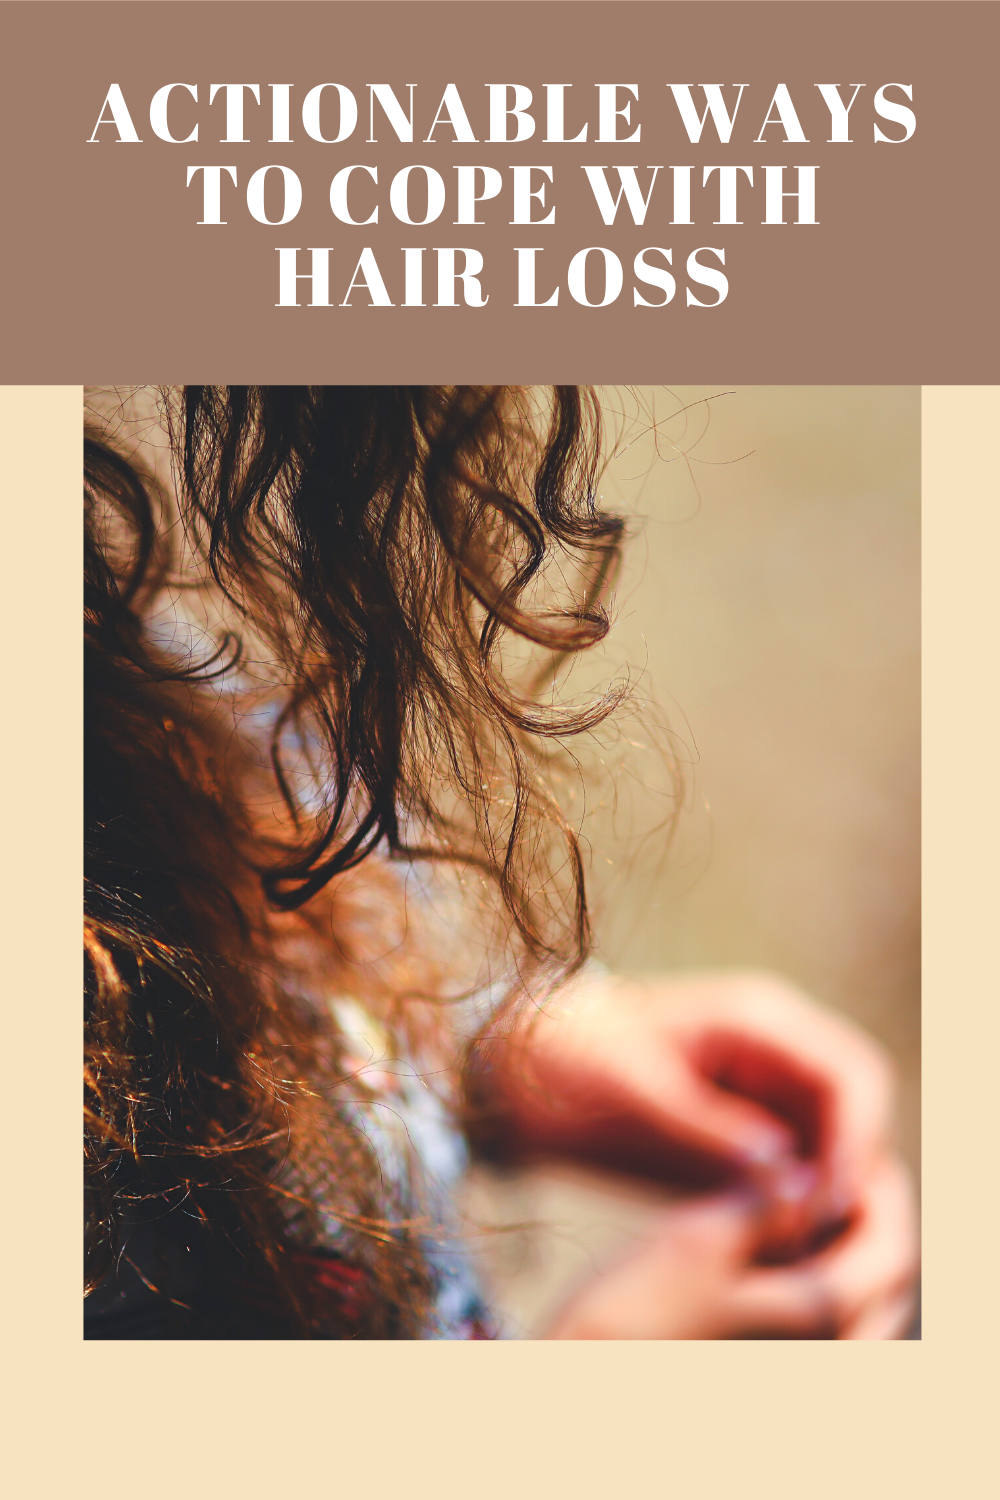 Actionable Ways to Cope With Hair Loss